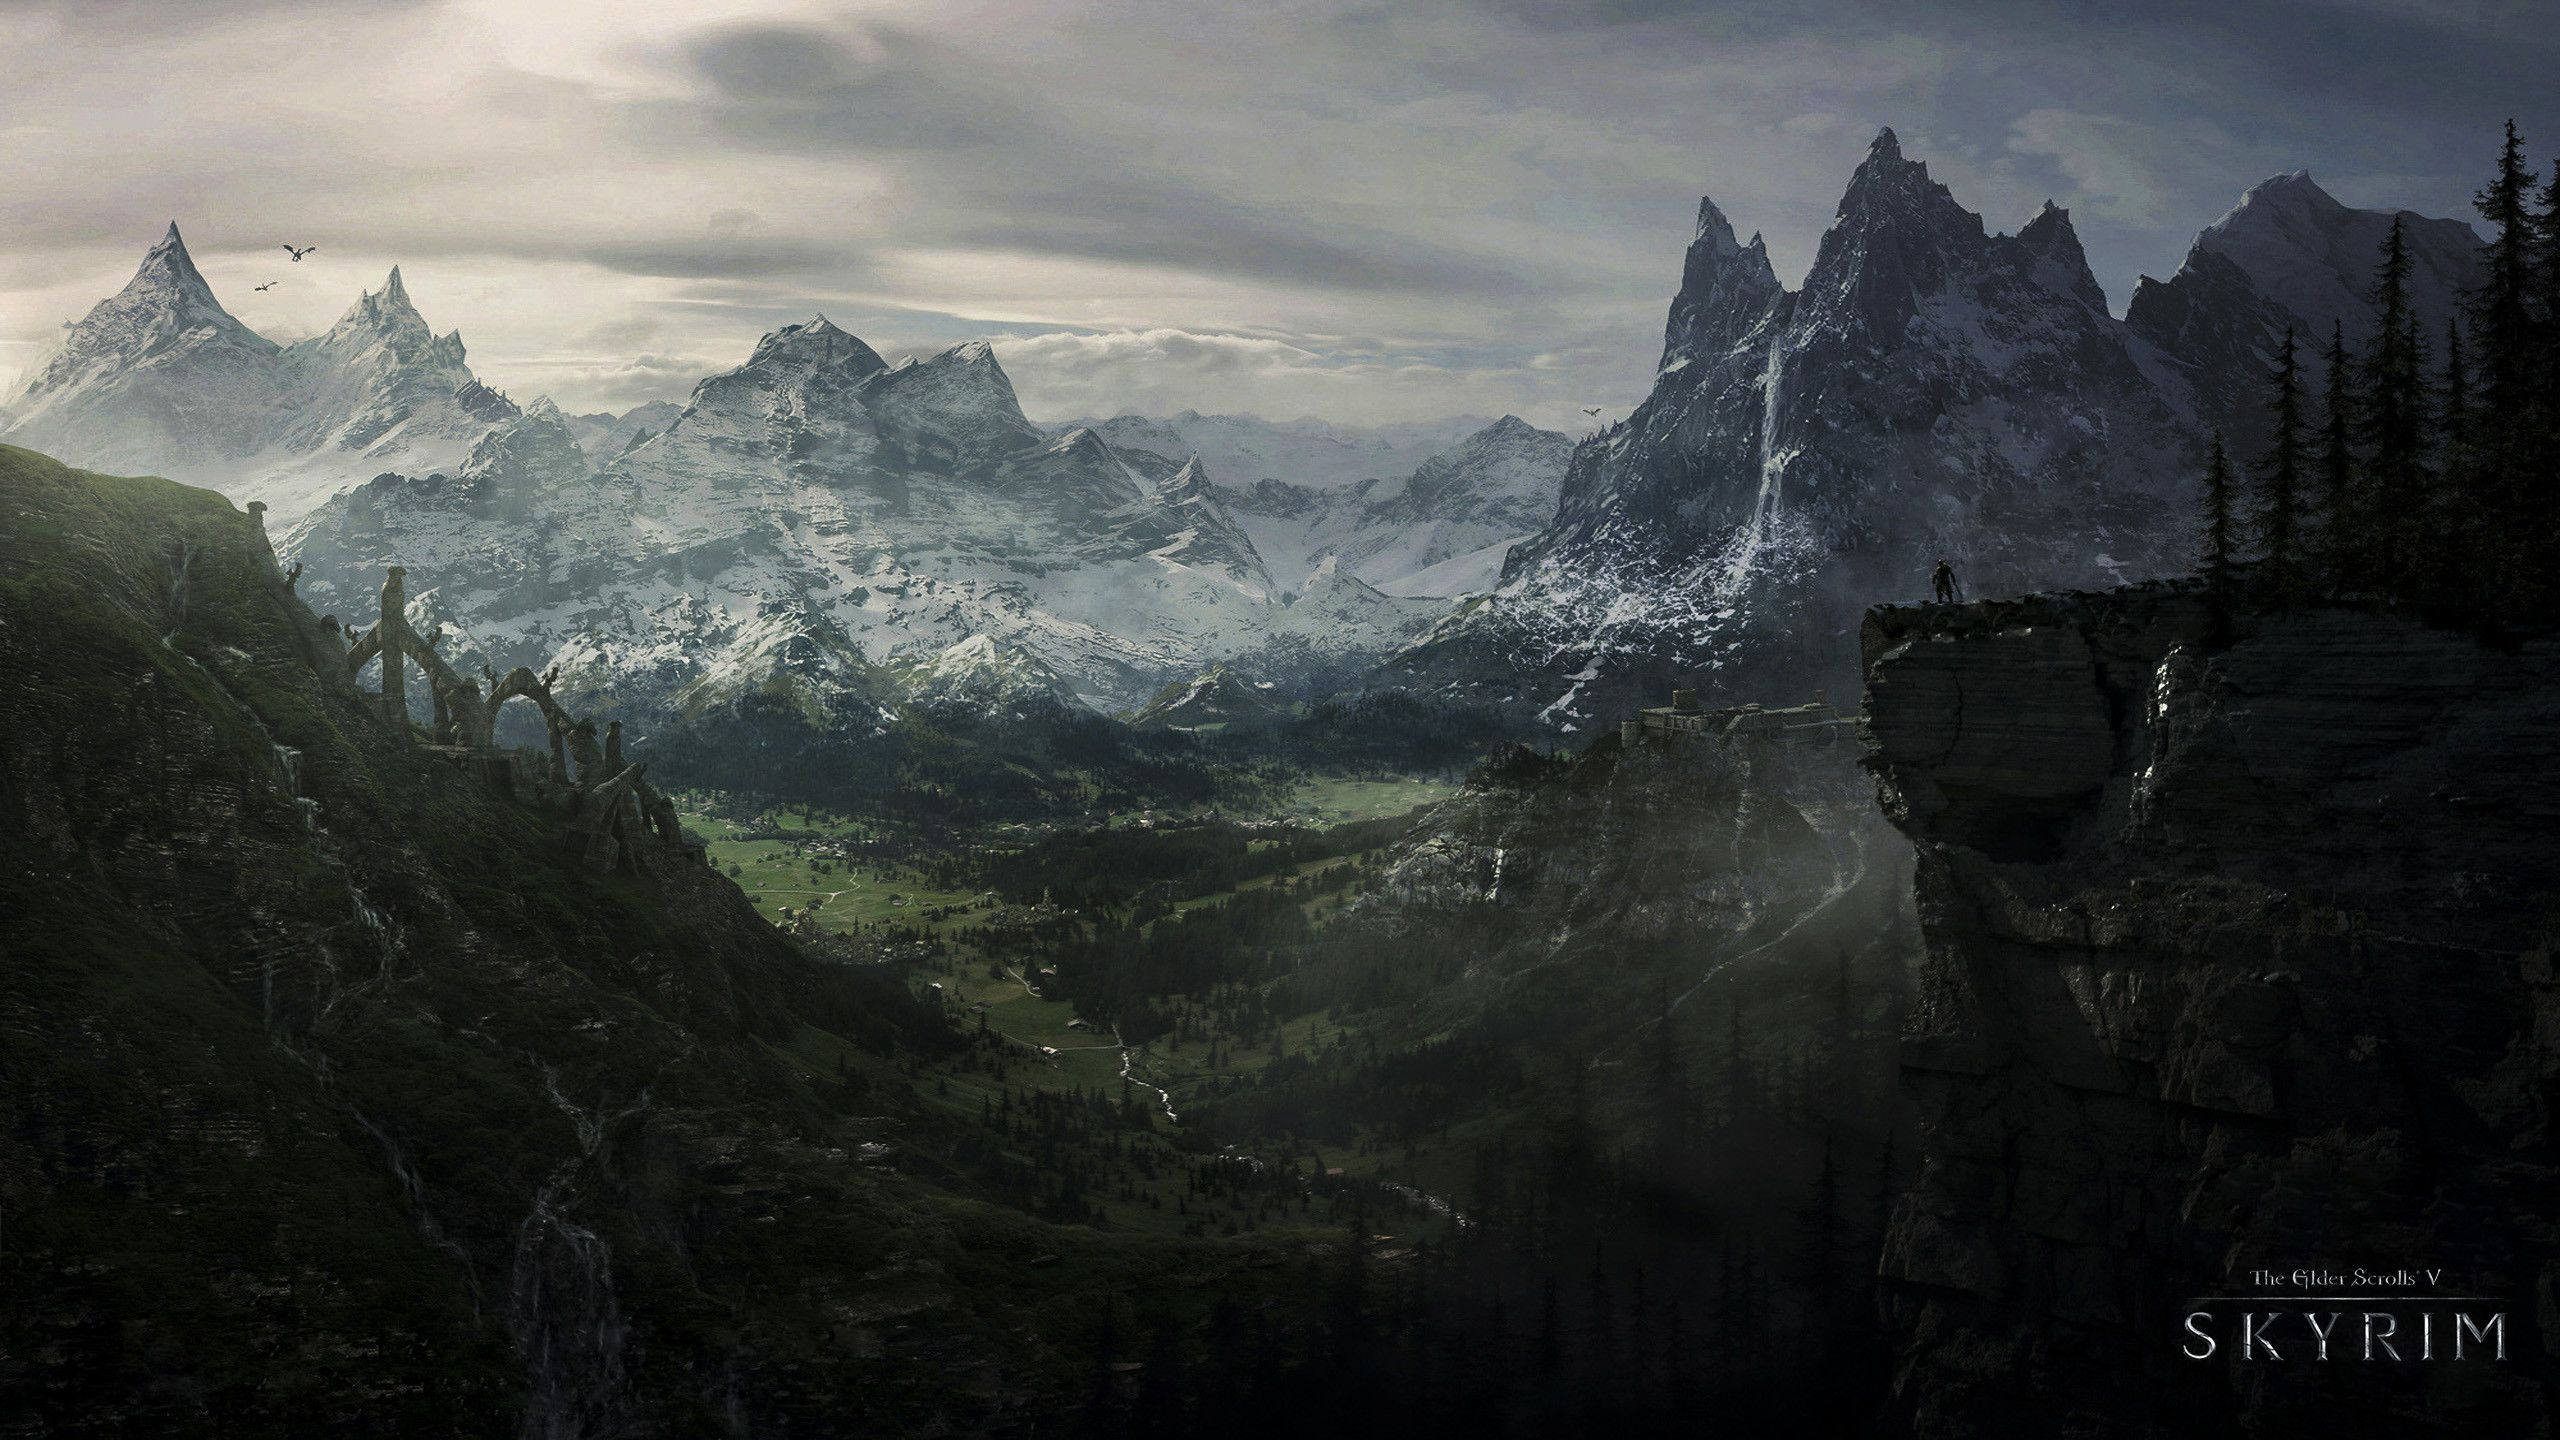 2560x1440 Hd Wallpaper Background Id 606641 Skyrim Wallpaper Skyrim Art Skyrim